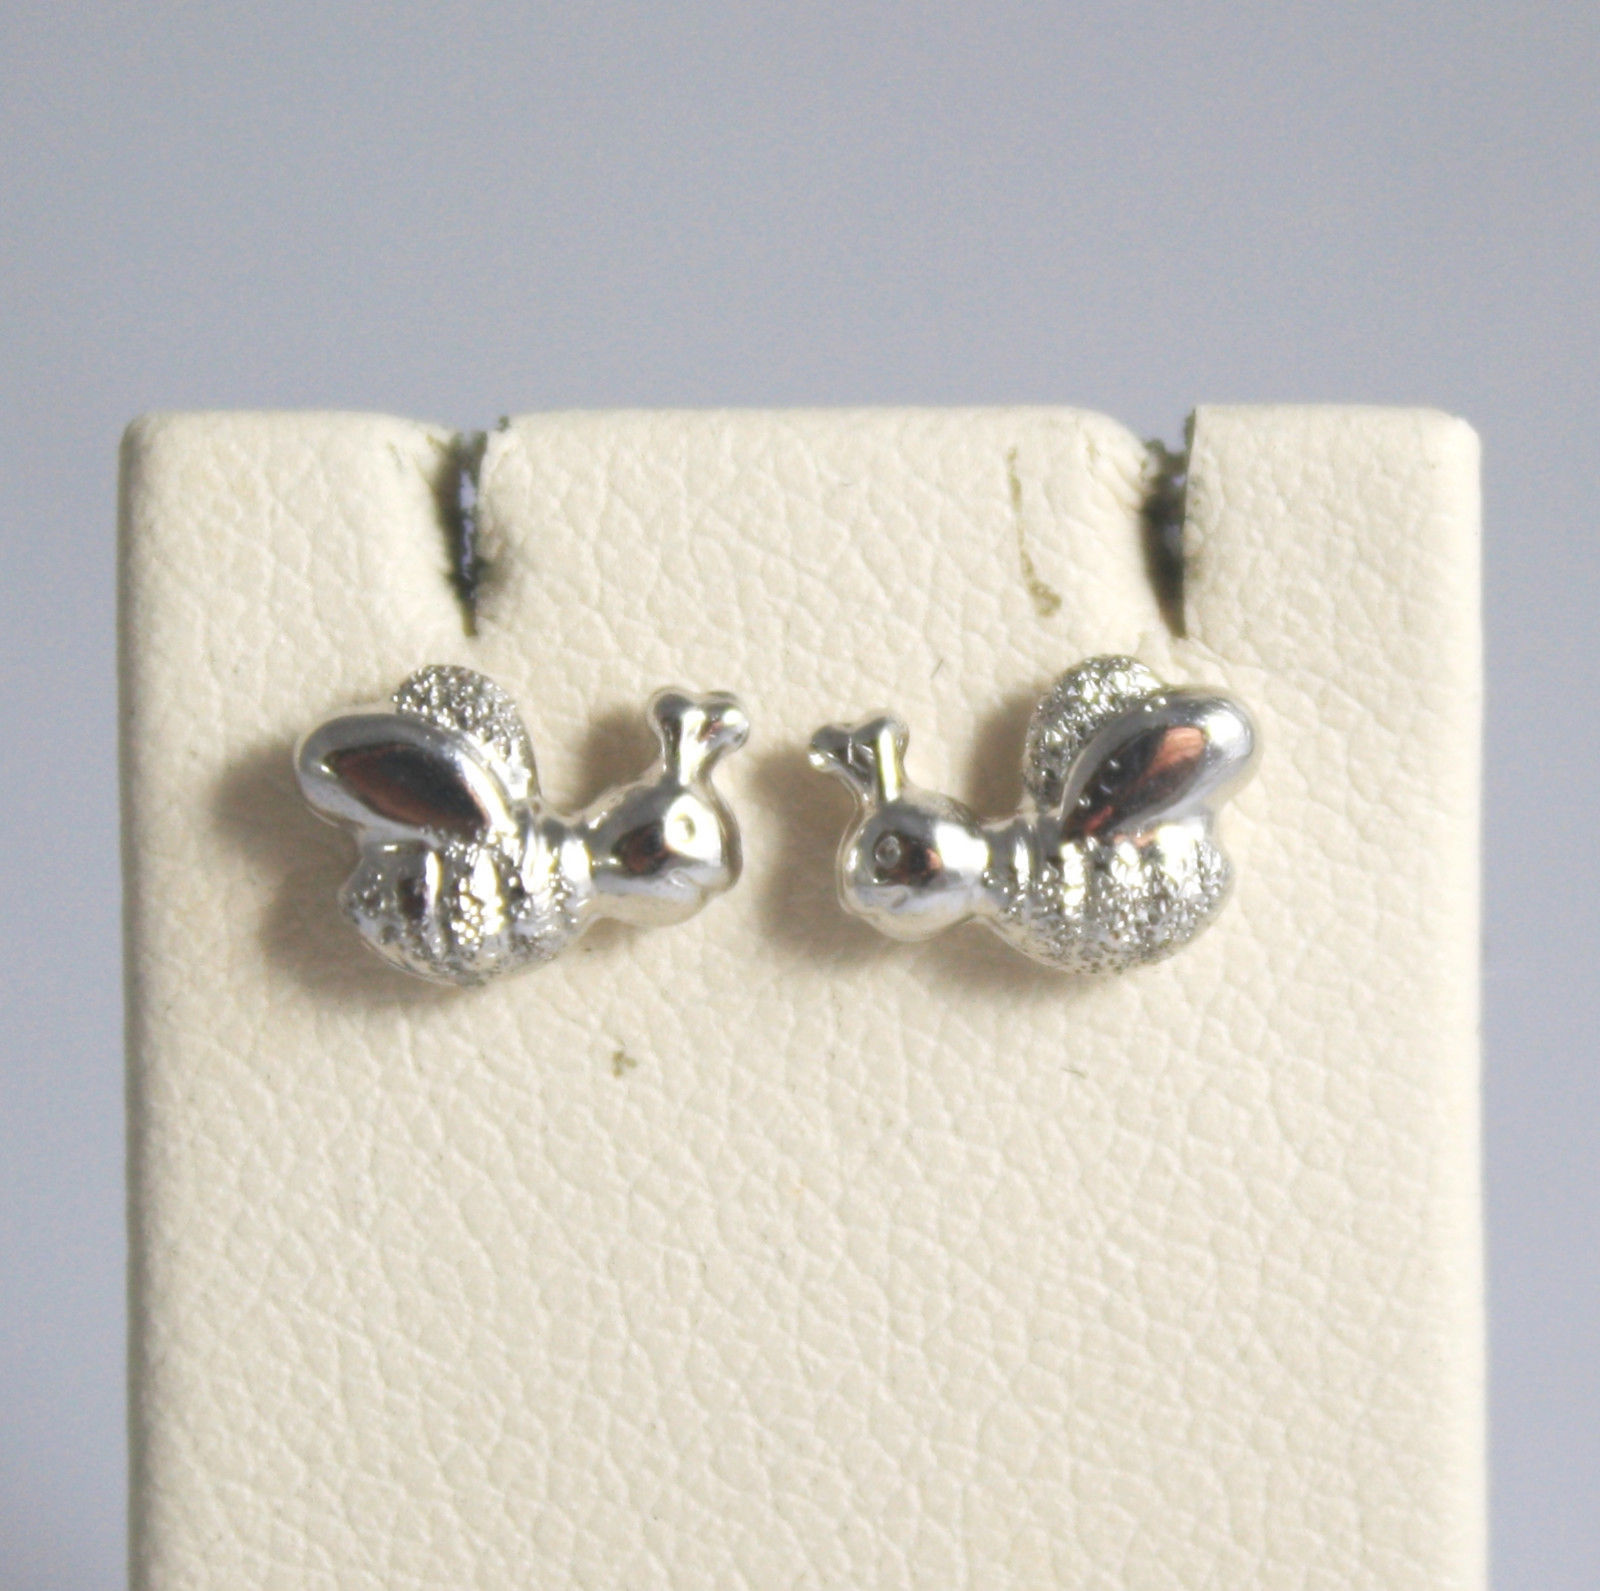 SOLID 18K WHITE GOLD EARRINGS, WITH POLISHED AND SATIN SMALL BEE